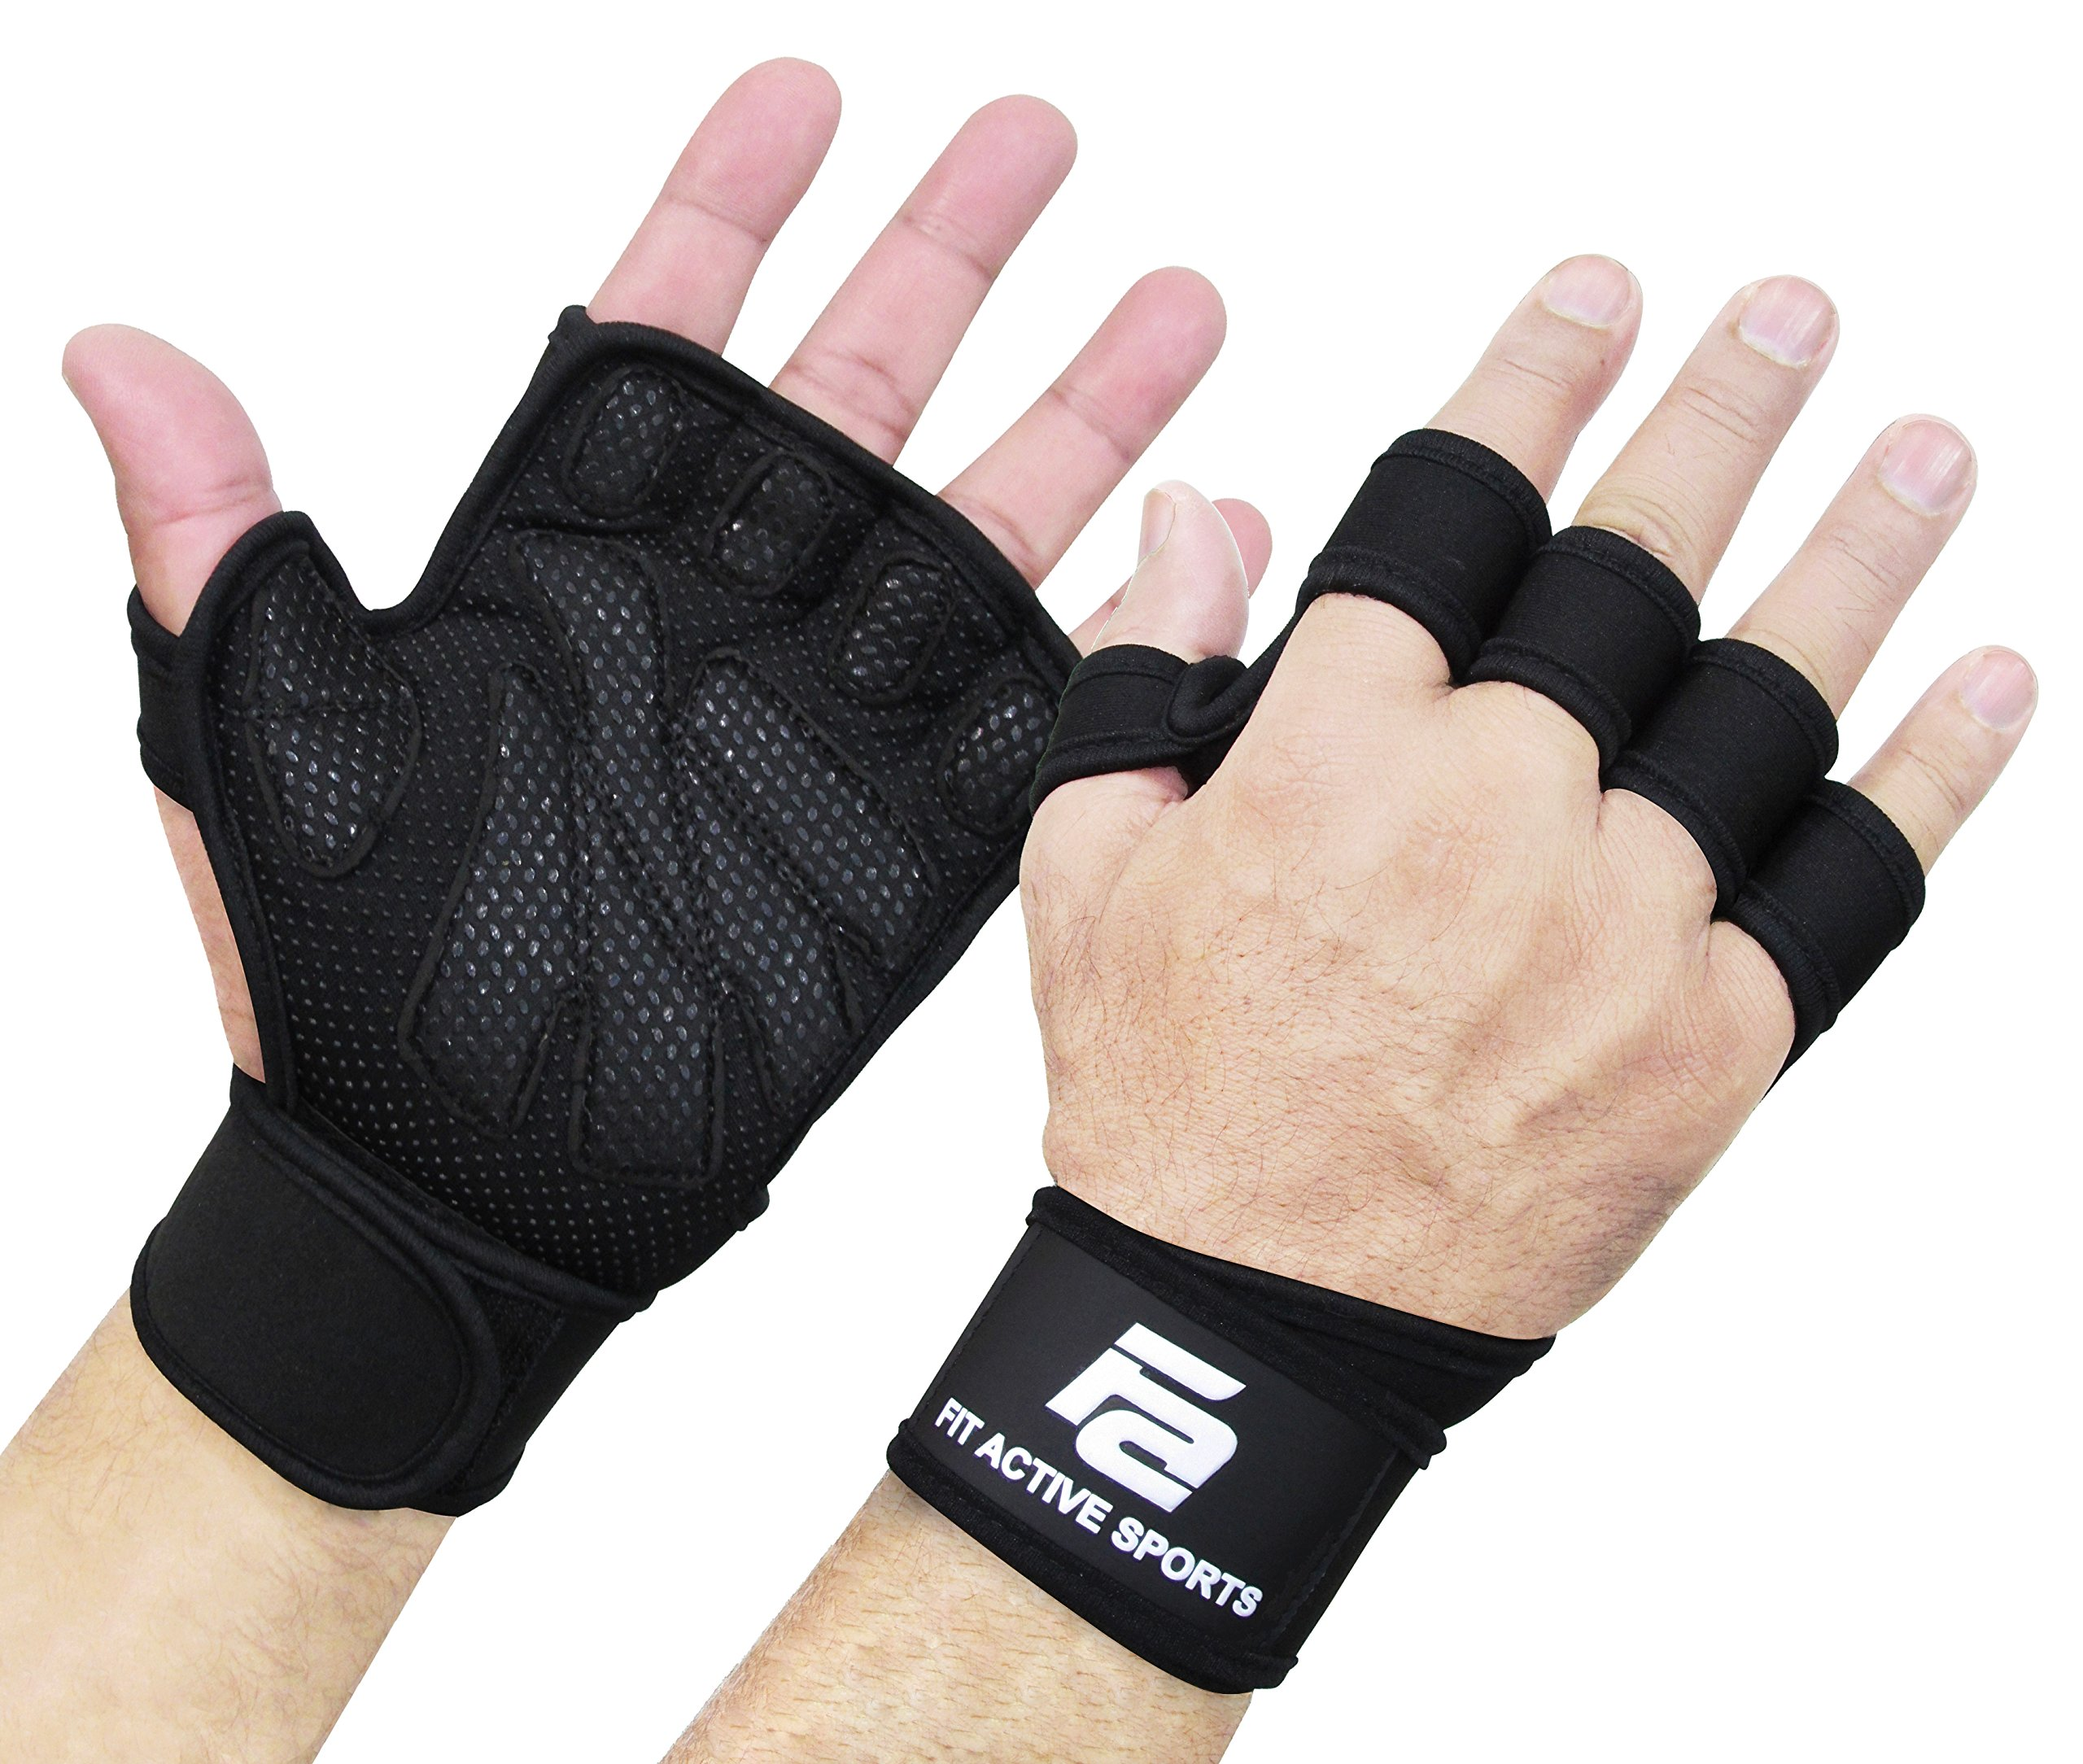 New Ventilated Weight Lifting Gloves with Built-In Wrist Wraps, Full Palm Protection & Extra Grip. Great for Pull Ups, Cross Training, Fitness, WODs & Weightlifting. Suits Men & Women by Fit Active Sports